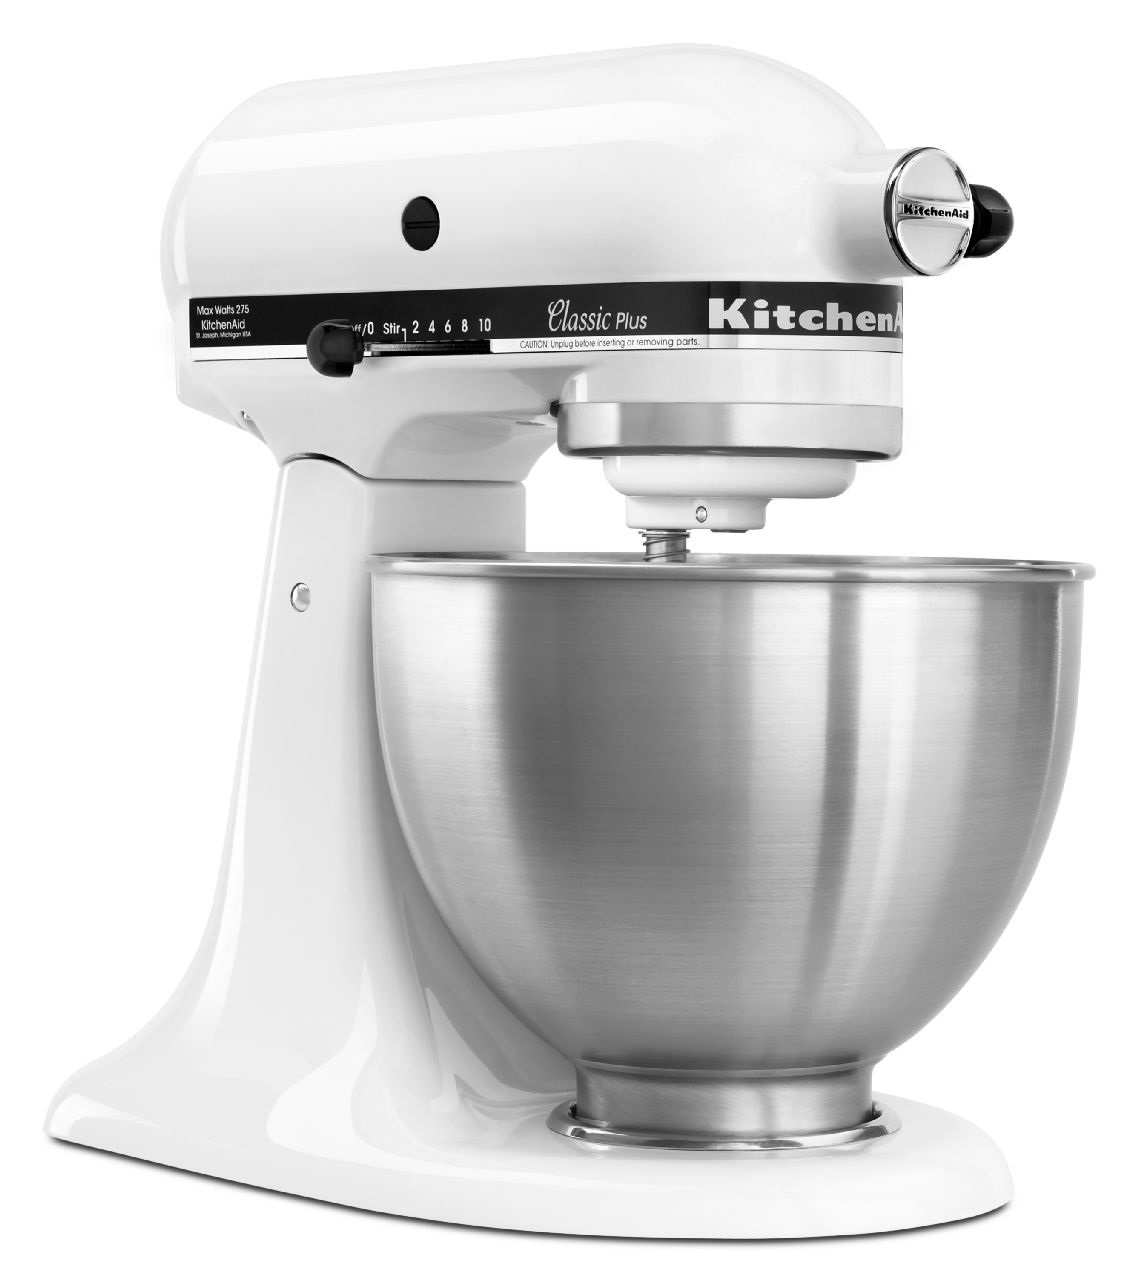 92d3d1debff Details about NEW KitchenAid Classic Plus Series 4.5-Quart Tilt-Head Stand  Mixer